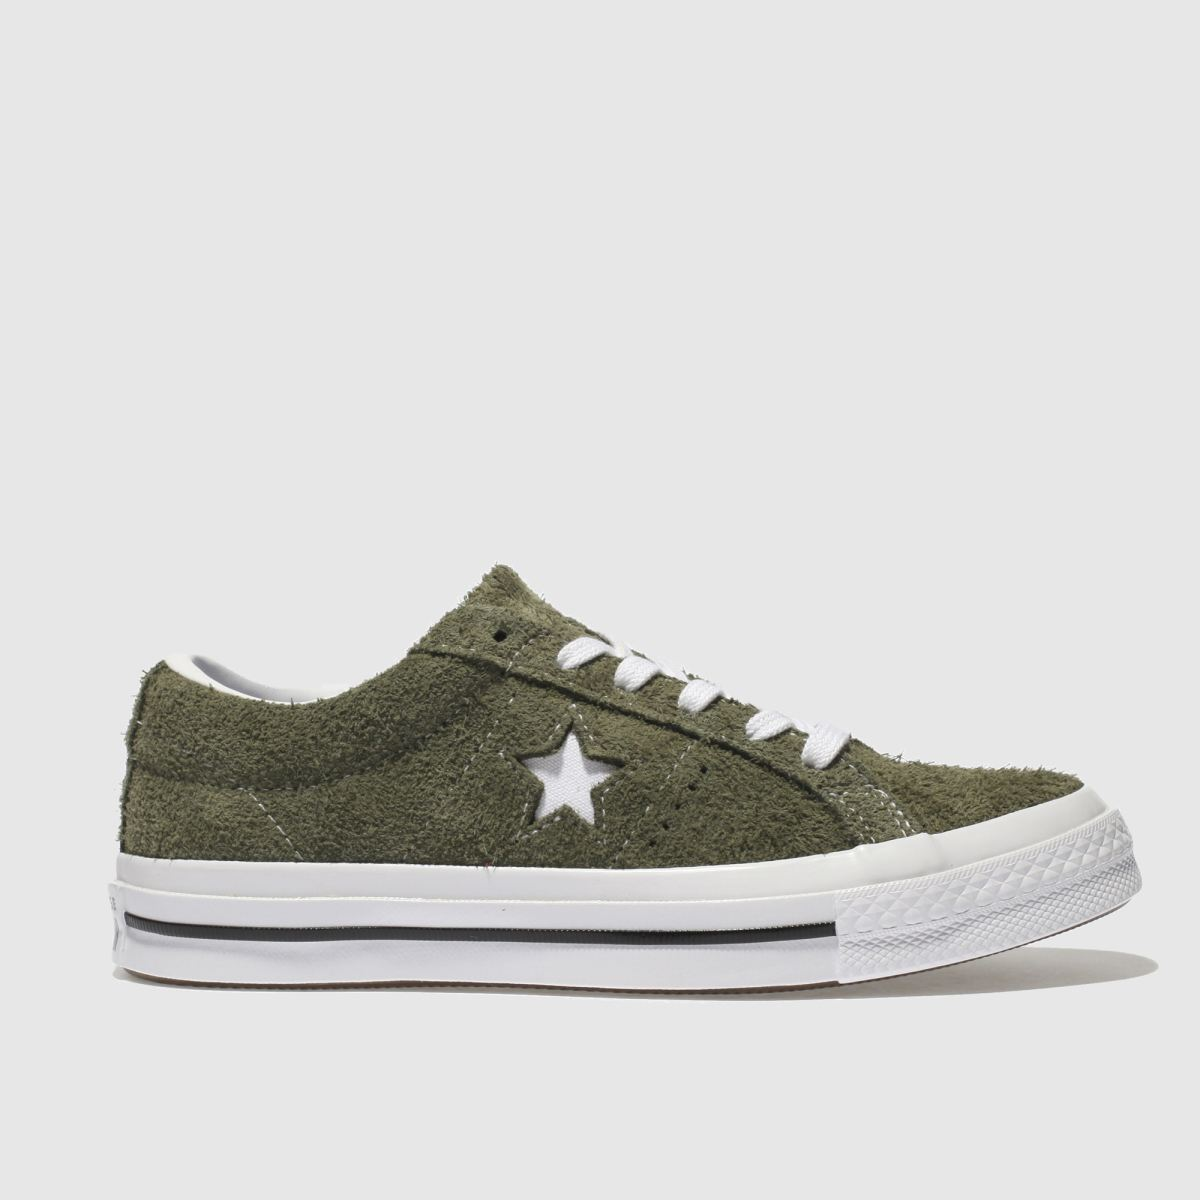 Converse Khaki One Star Vintage Suede Trainers